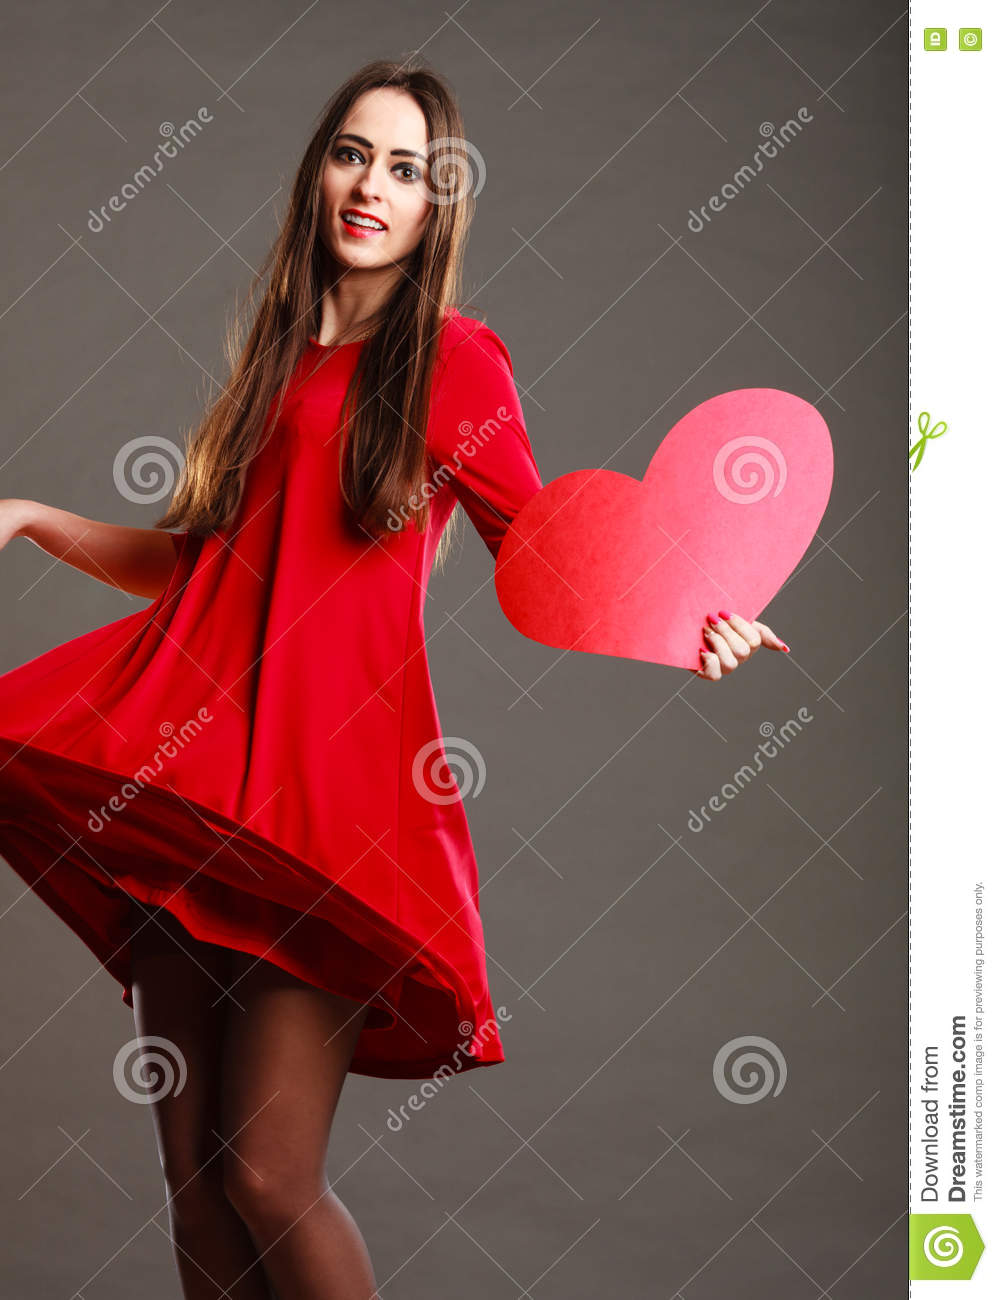 Woman In Red Dress Holds Heart Sign Stock Image Image Of Dance